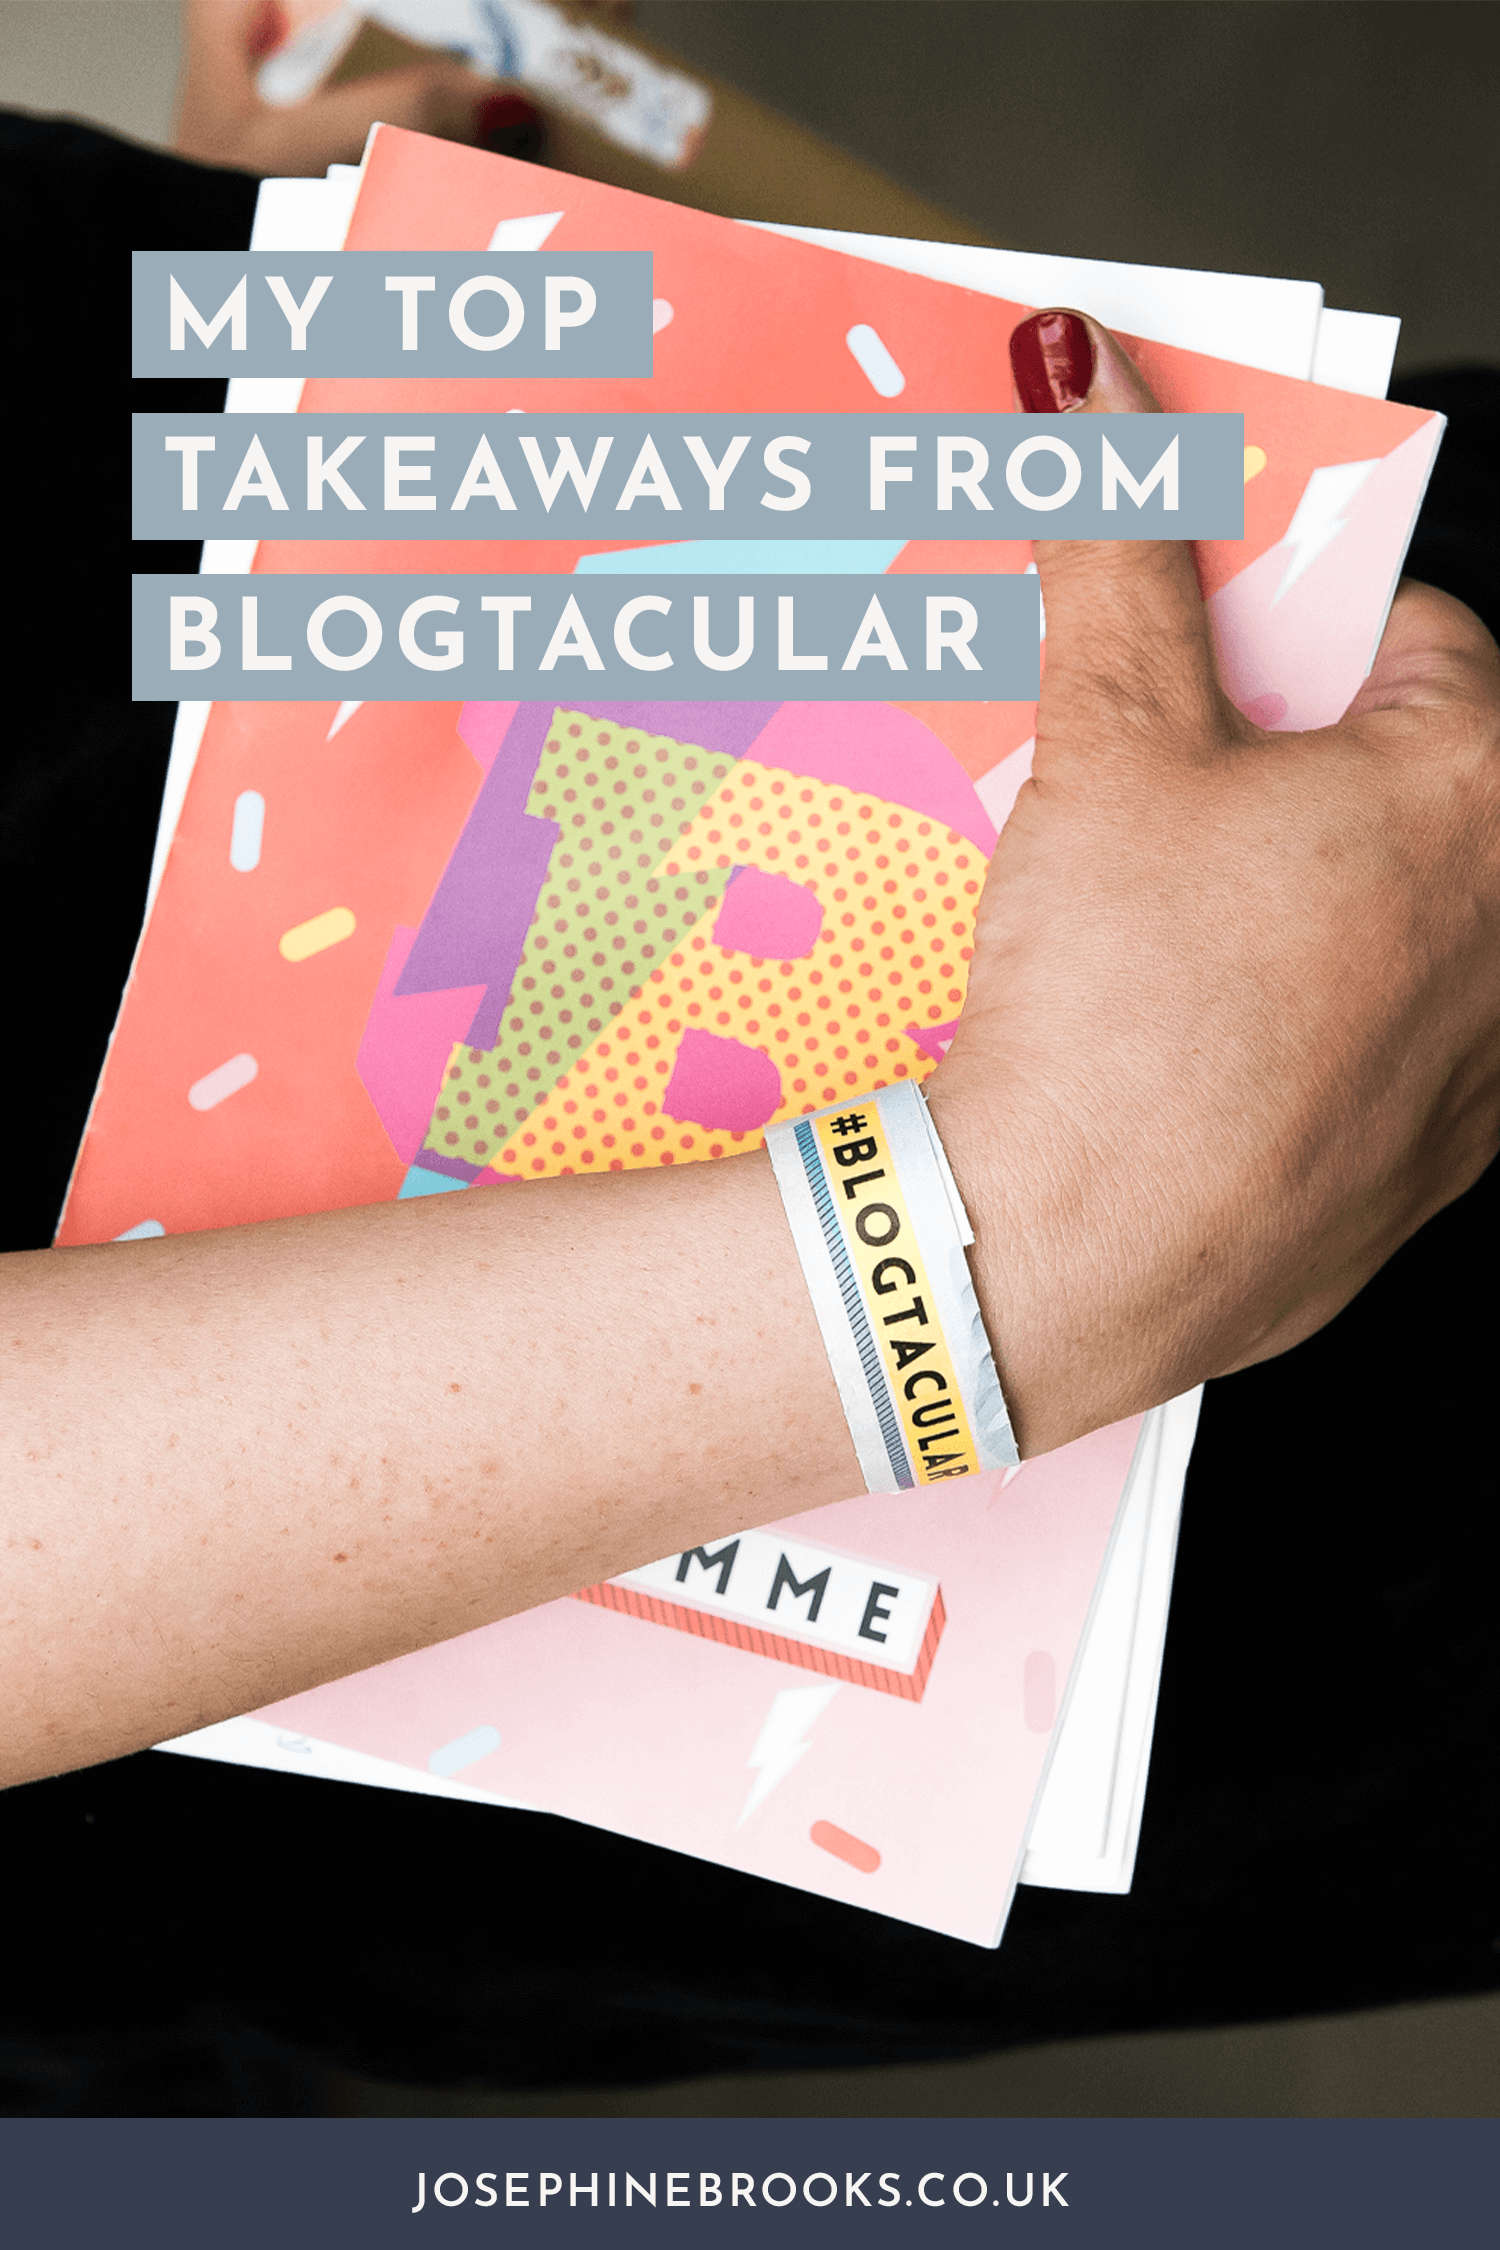 My top takeaways from Blogtacular | What I learned at Blogtacular, Blogtacular 2018, Conference for makers and designers and bloggers Image credit: Blogtacular 2018 © Will Ireland| Josephine Brooks.